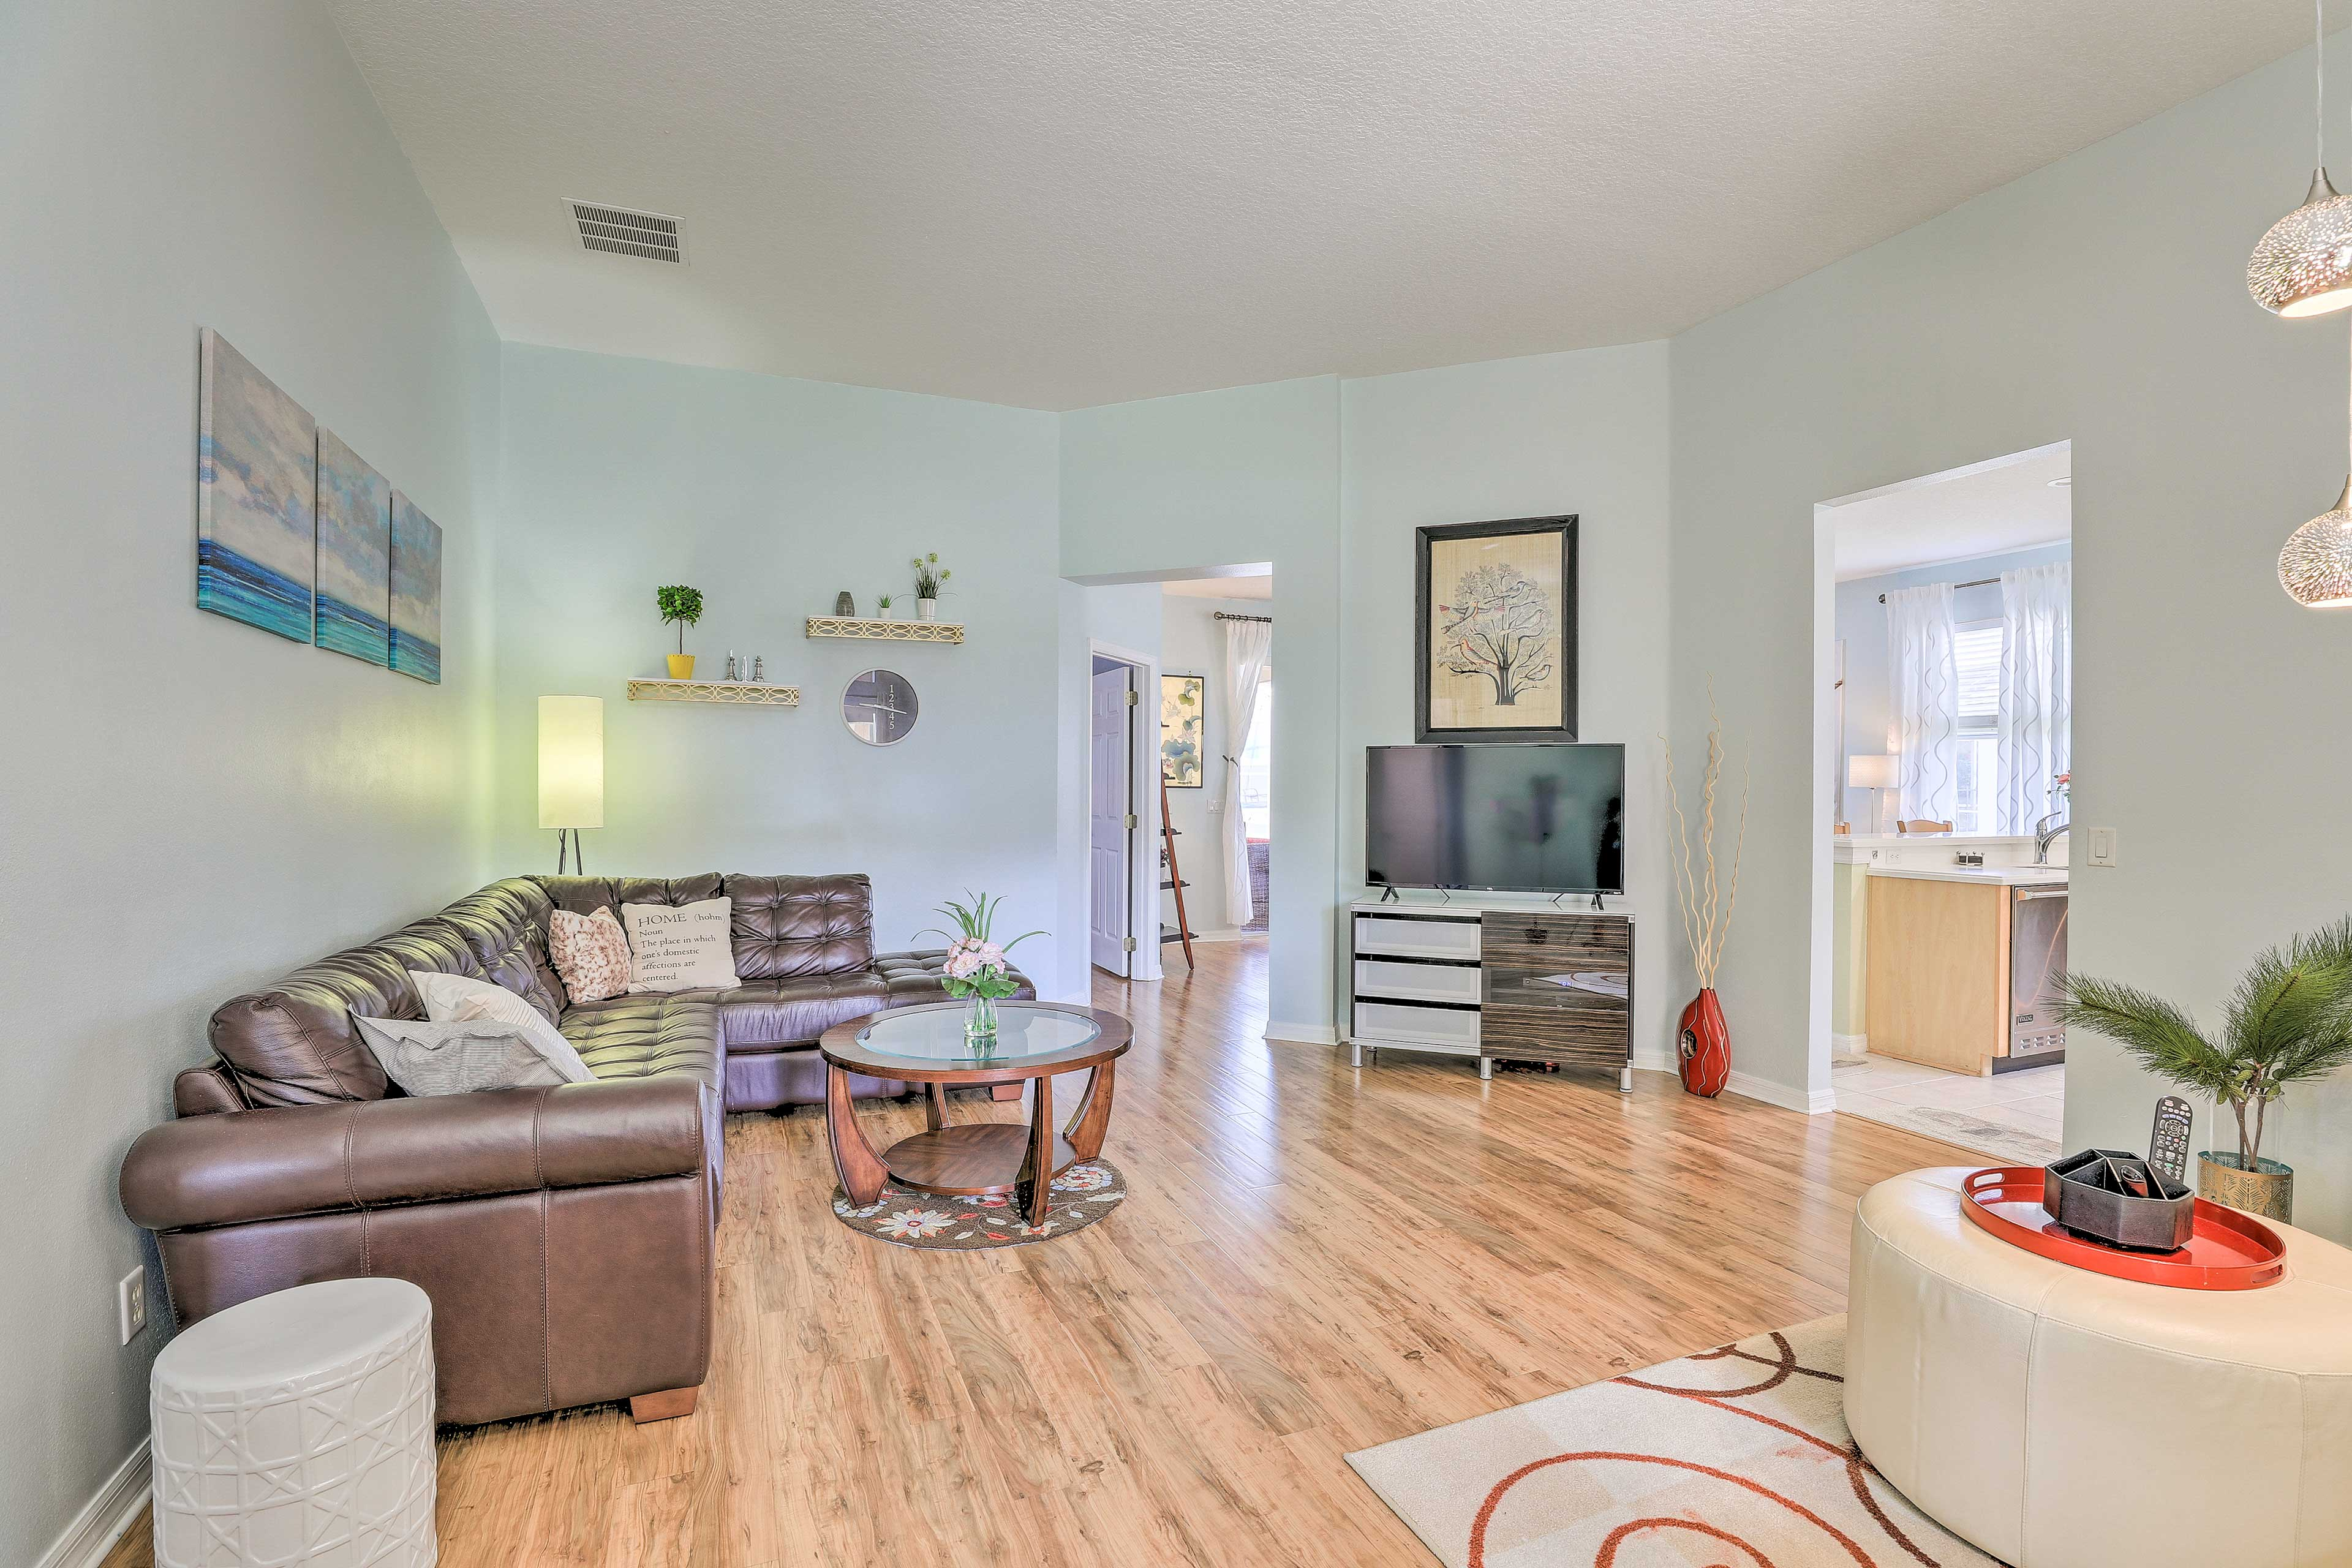 There are 3 bedrooms, 2 bathrooms, and space for 6 travelers!